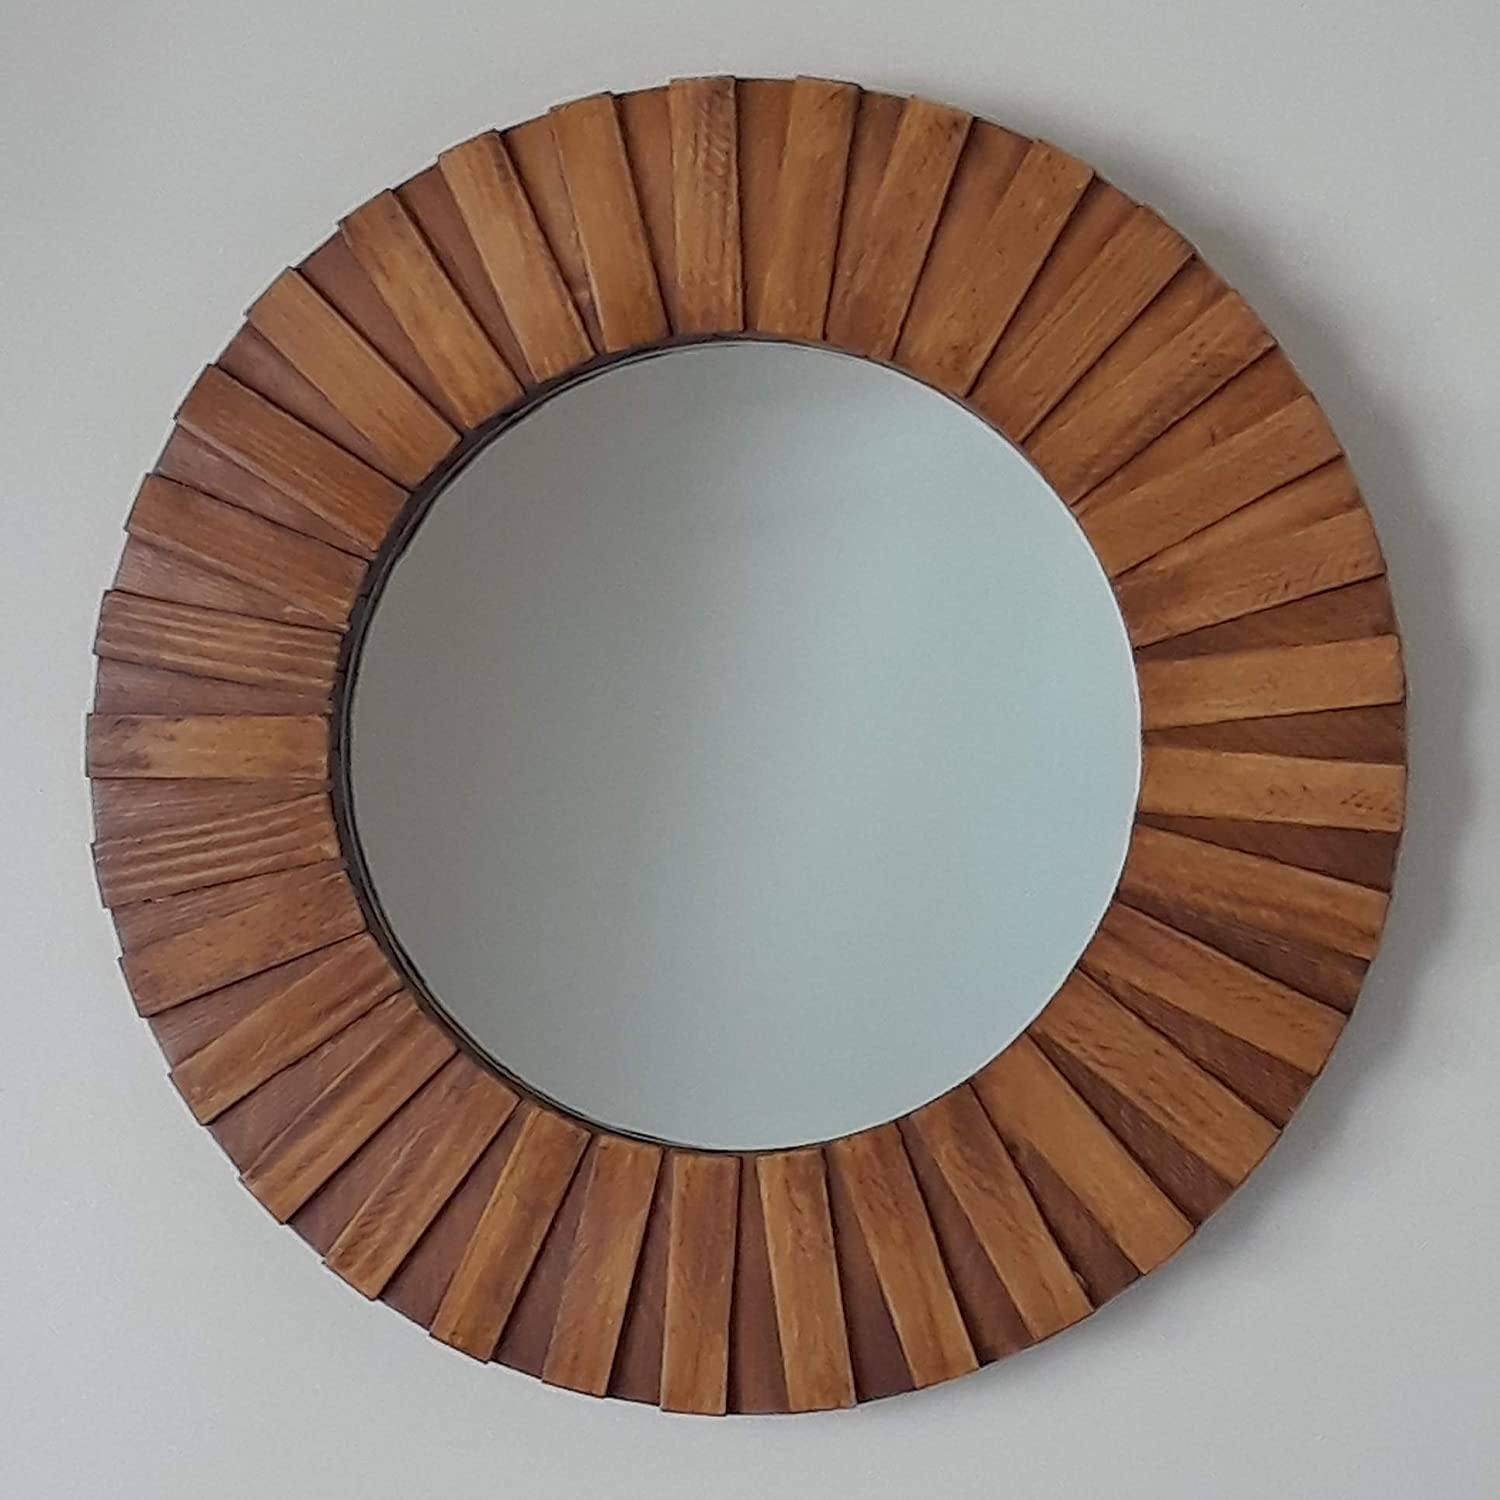 Round Wall Mirror Handmade 26' Teak Color